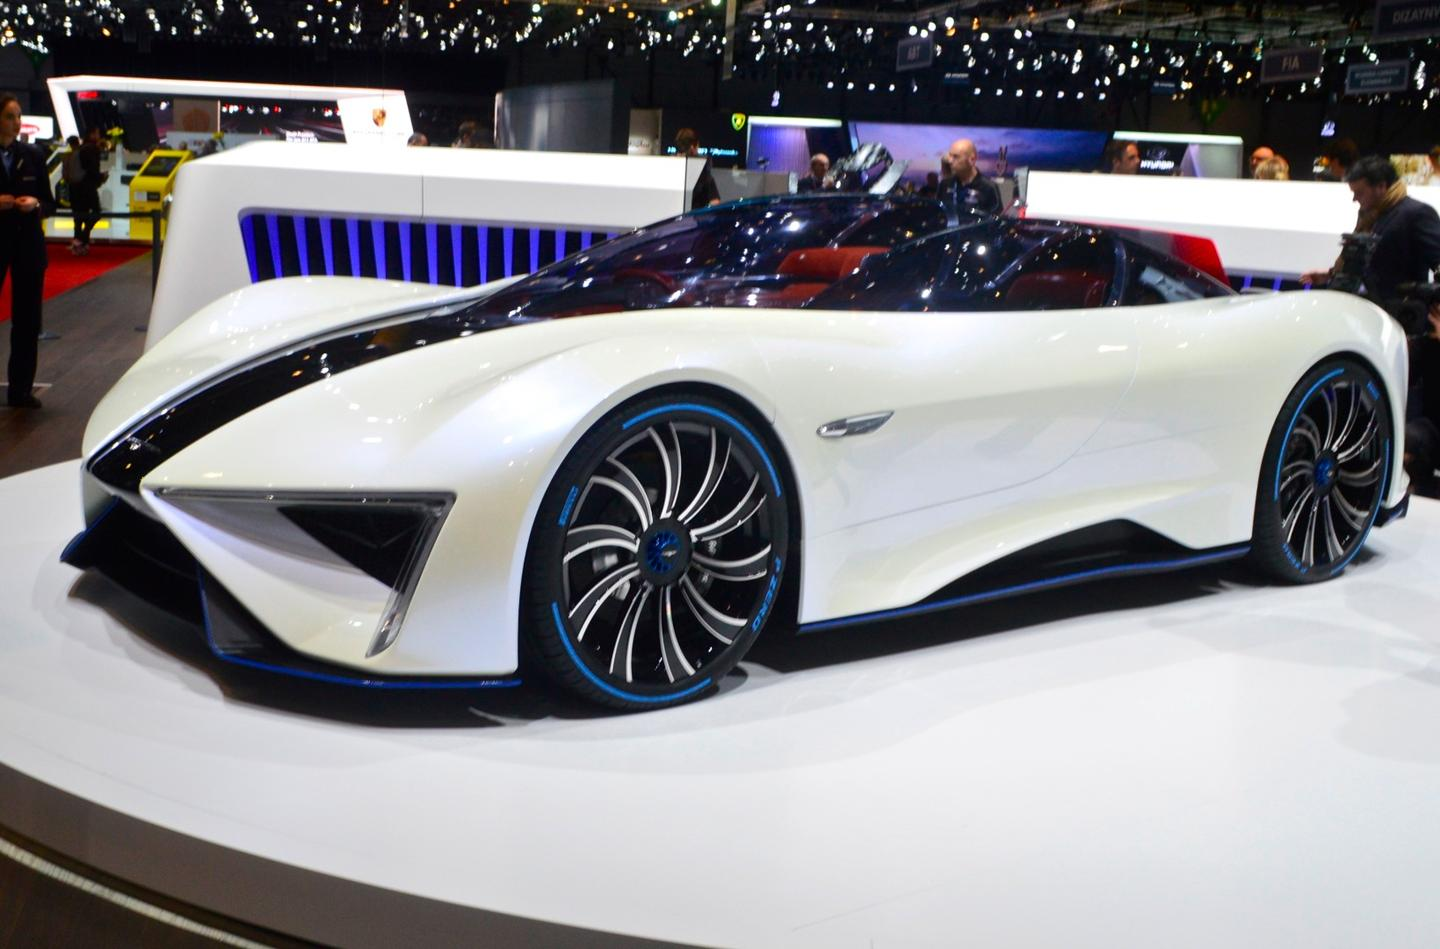 Big wheels, split bodywork and a triple-bubble canopy give the Techrules Ren one of the most distinctive looks at the entireGeneva Motor Show